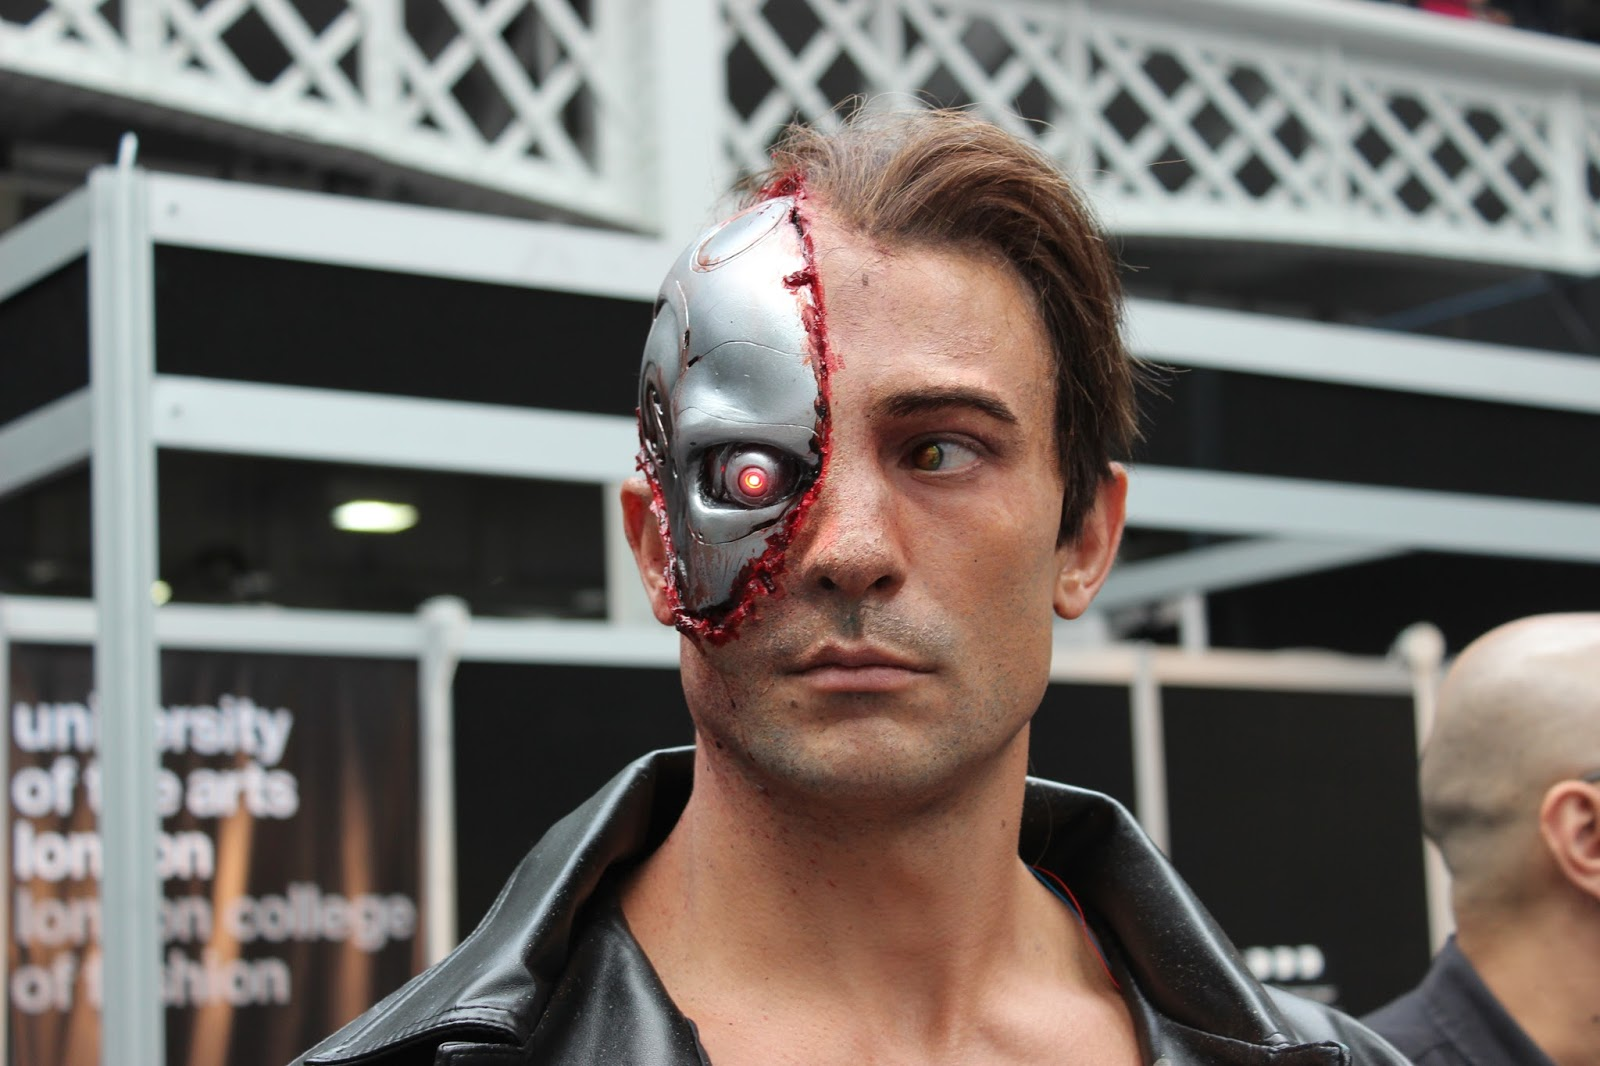 IMATS london 2014 robocop man